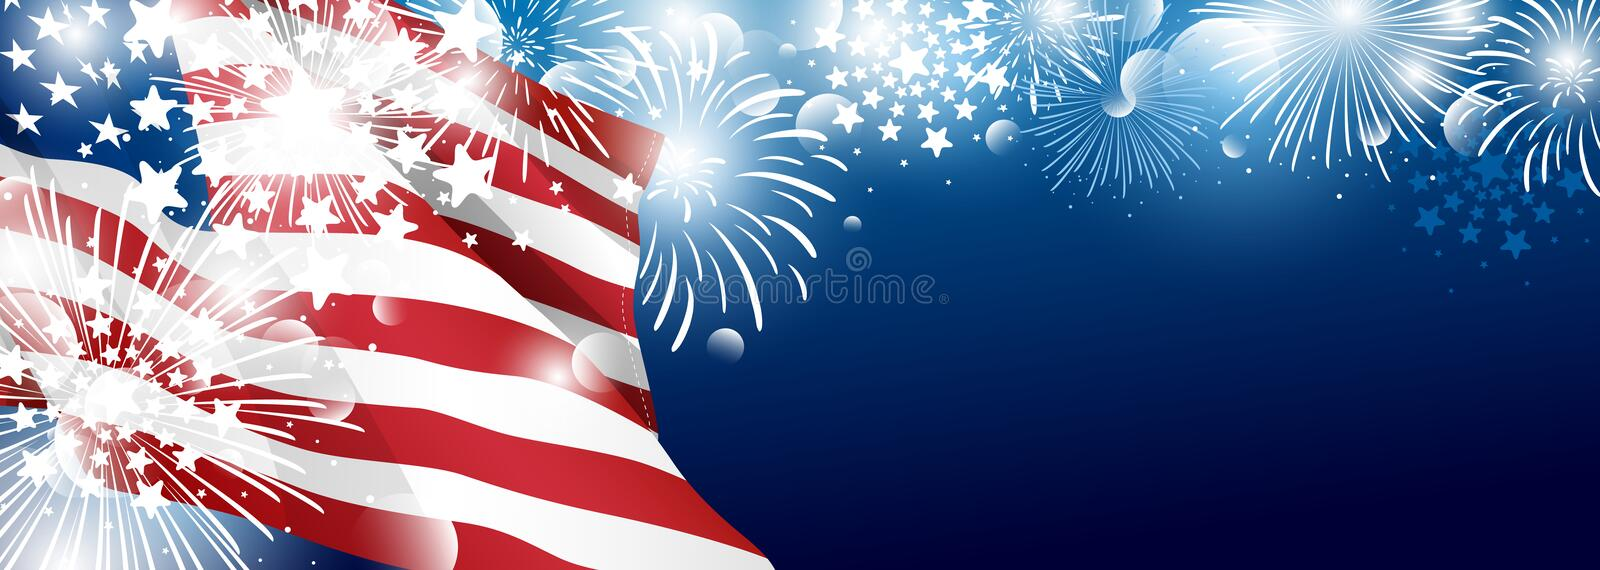 4th of july USA Independence day banner background design of American flag with fireworks stock illustration